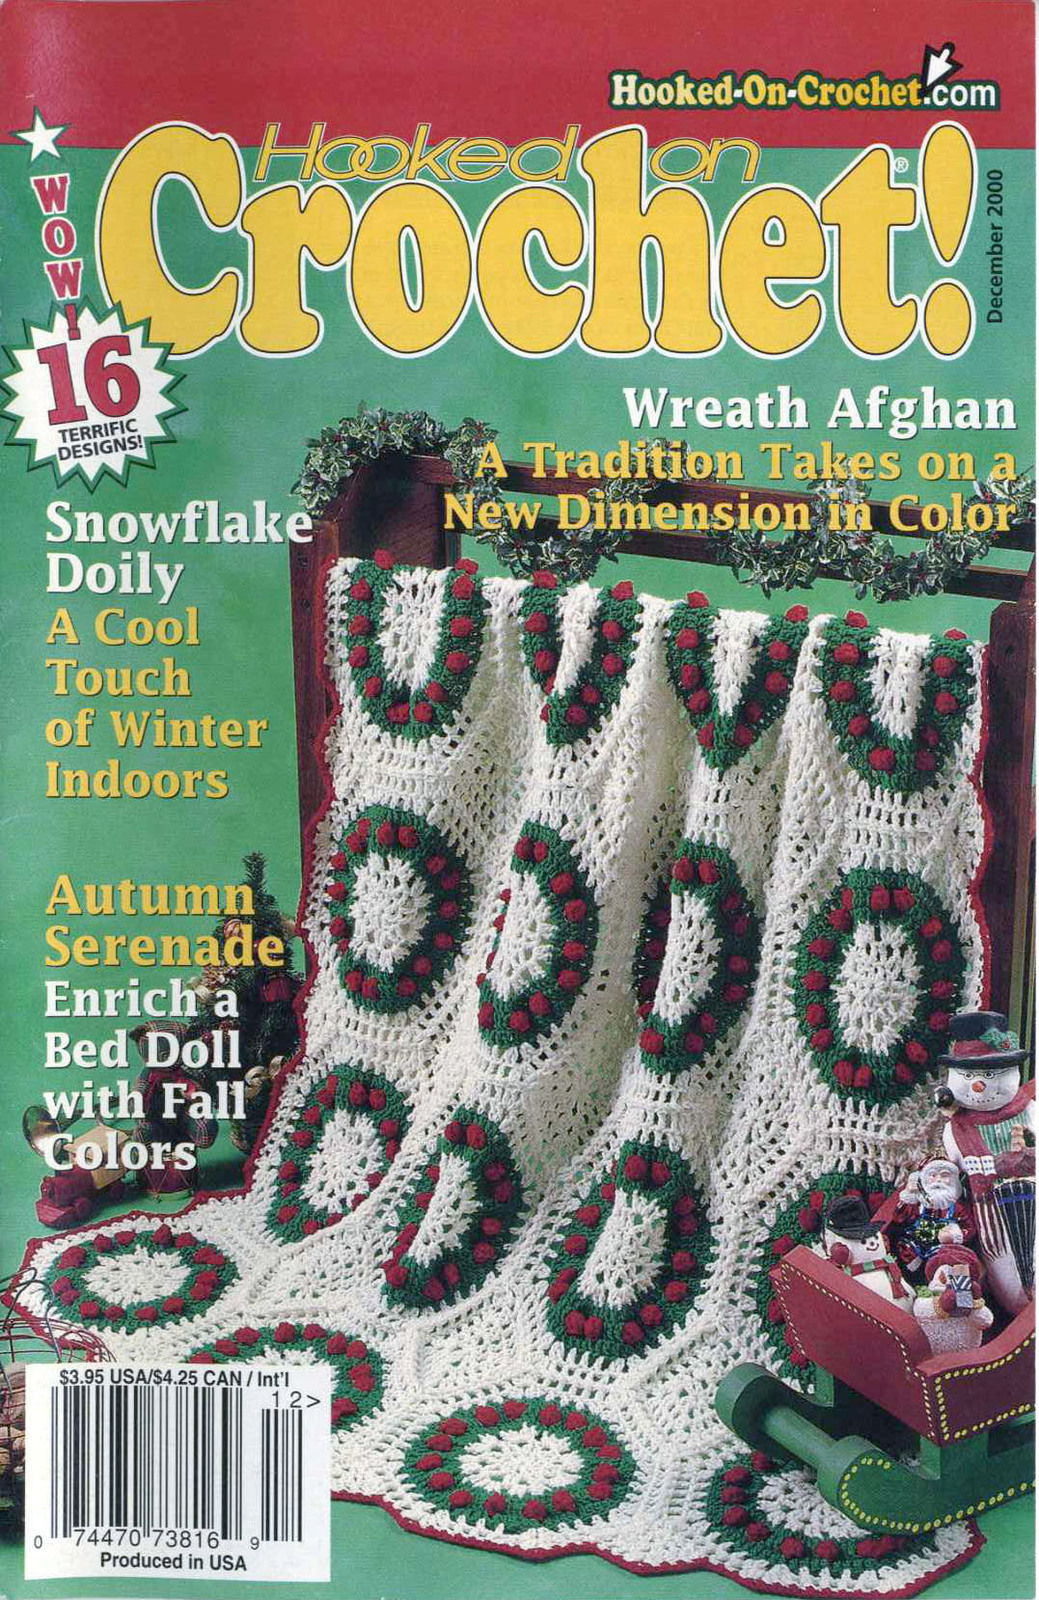 Hooked on Crochet! patterns #84; December 2000